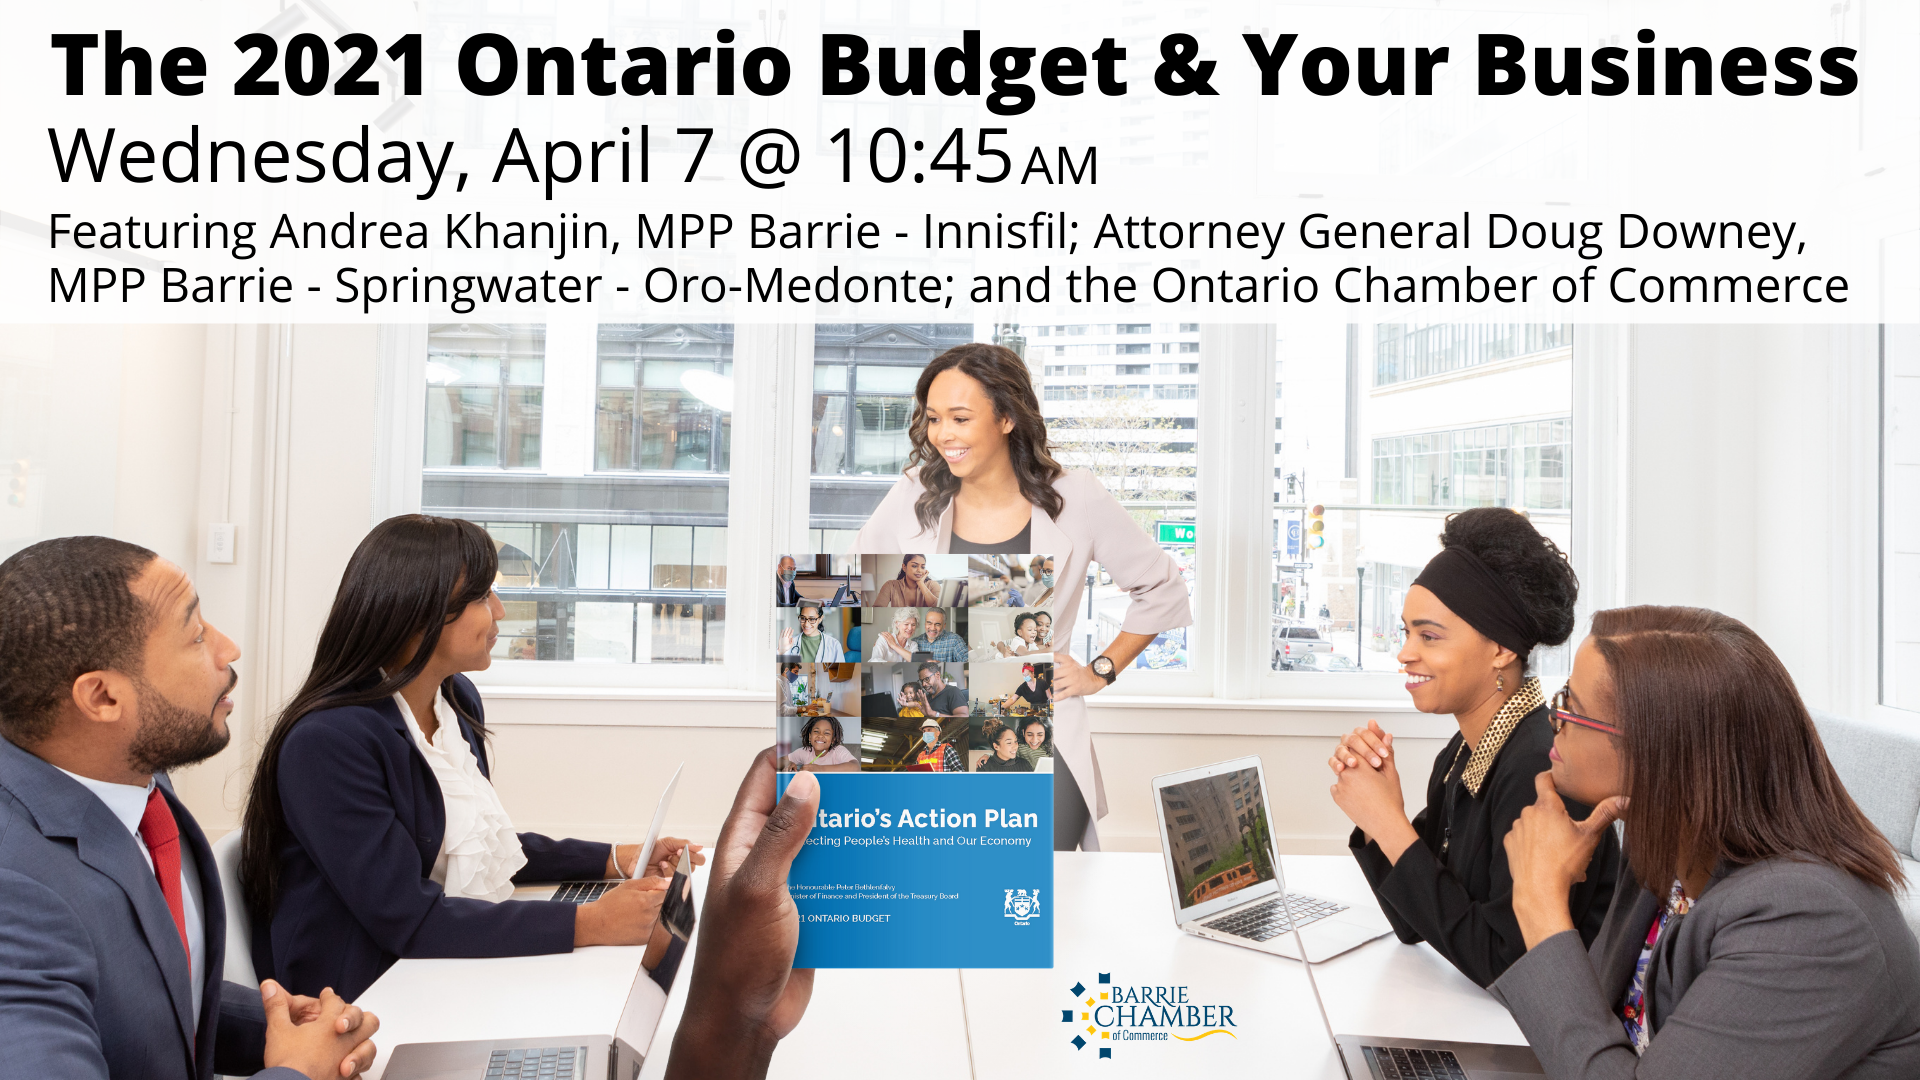 The 2021 Ontario Budget & Your Business - April 7, 2021 @ 10:45 am